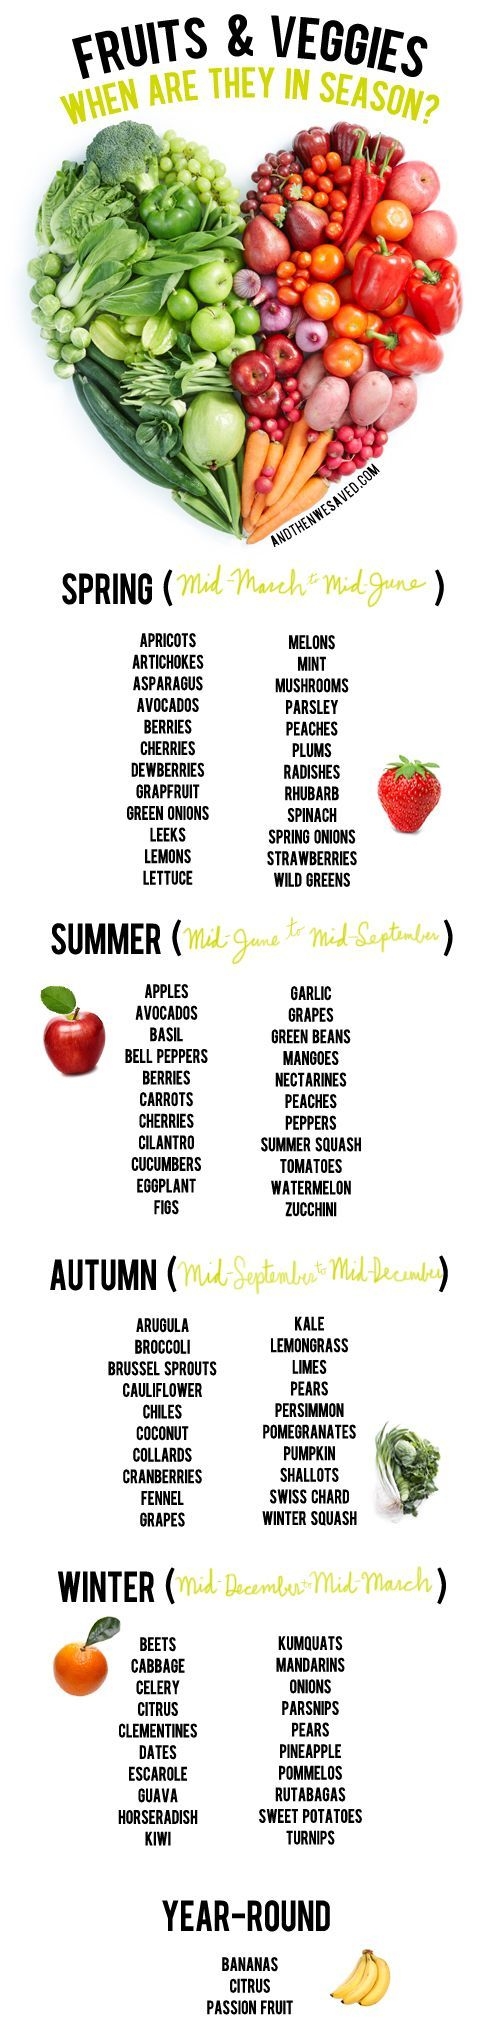 Fruits & Veggies. When are they in season?: